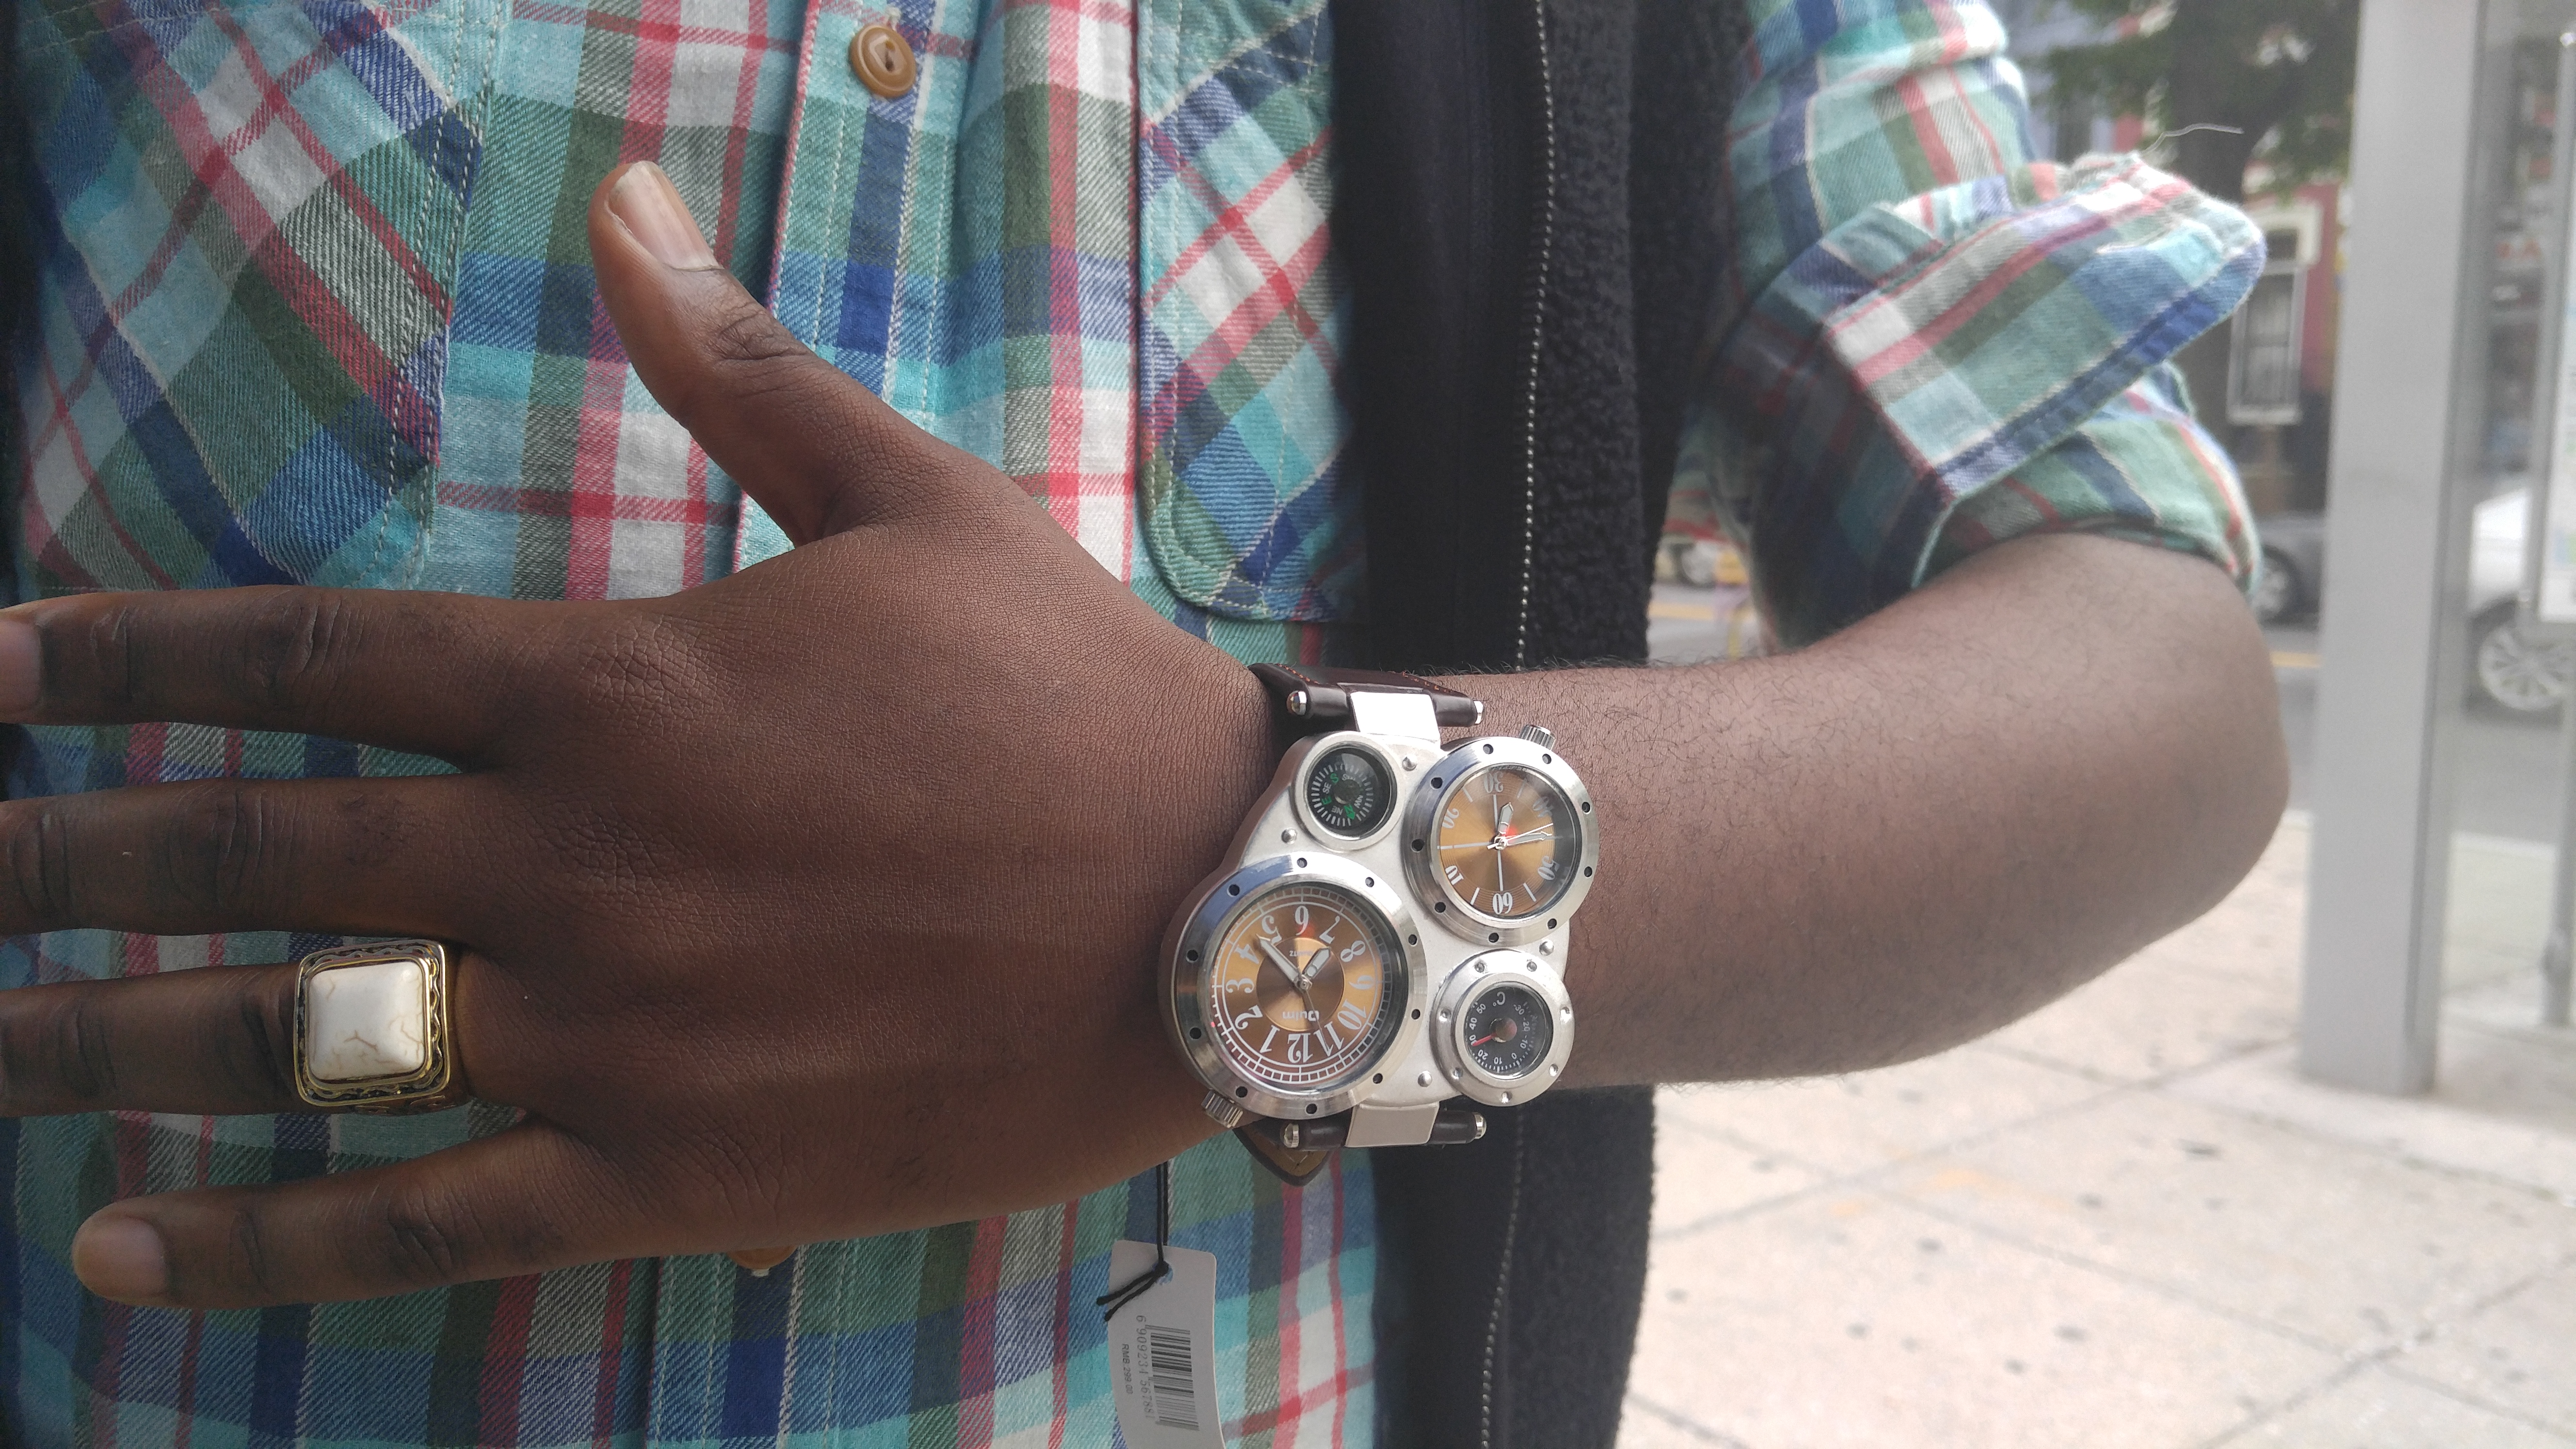 Customer at Lees Flowers shows off wrist watch